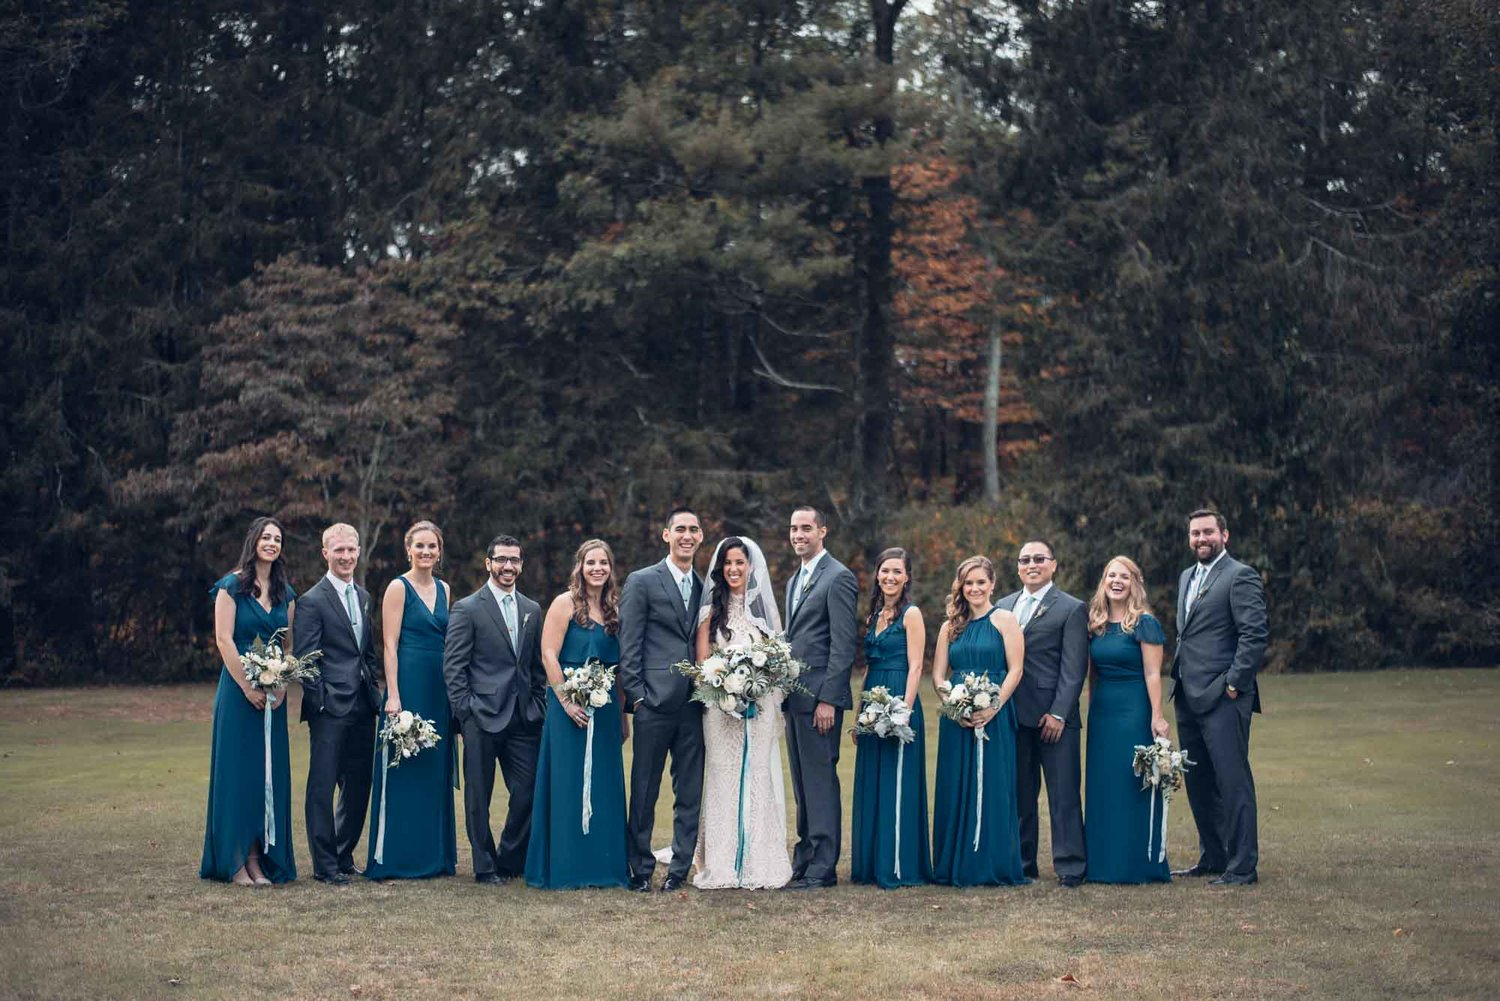 Woodstock Connecticut wedding bridal party groomsmen bridesmaids bouquets blue green anenome.jpg